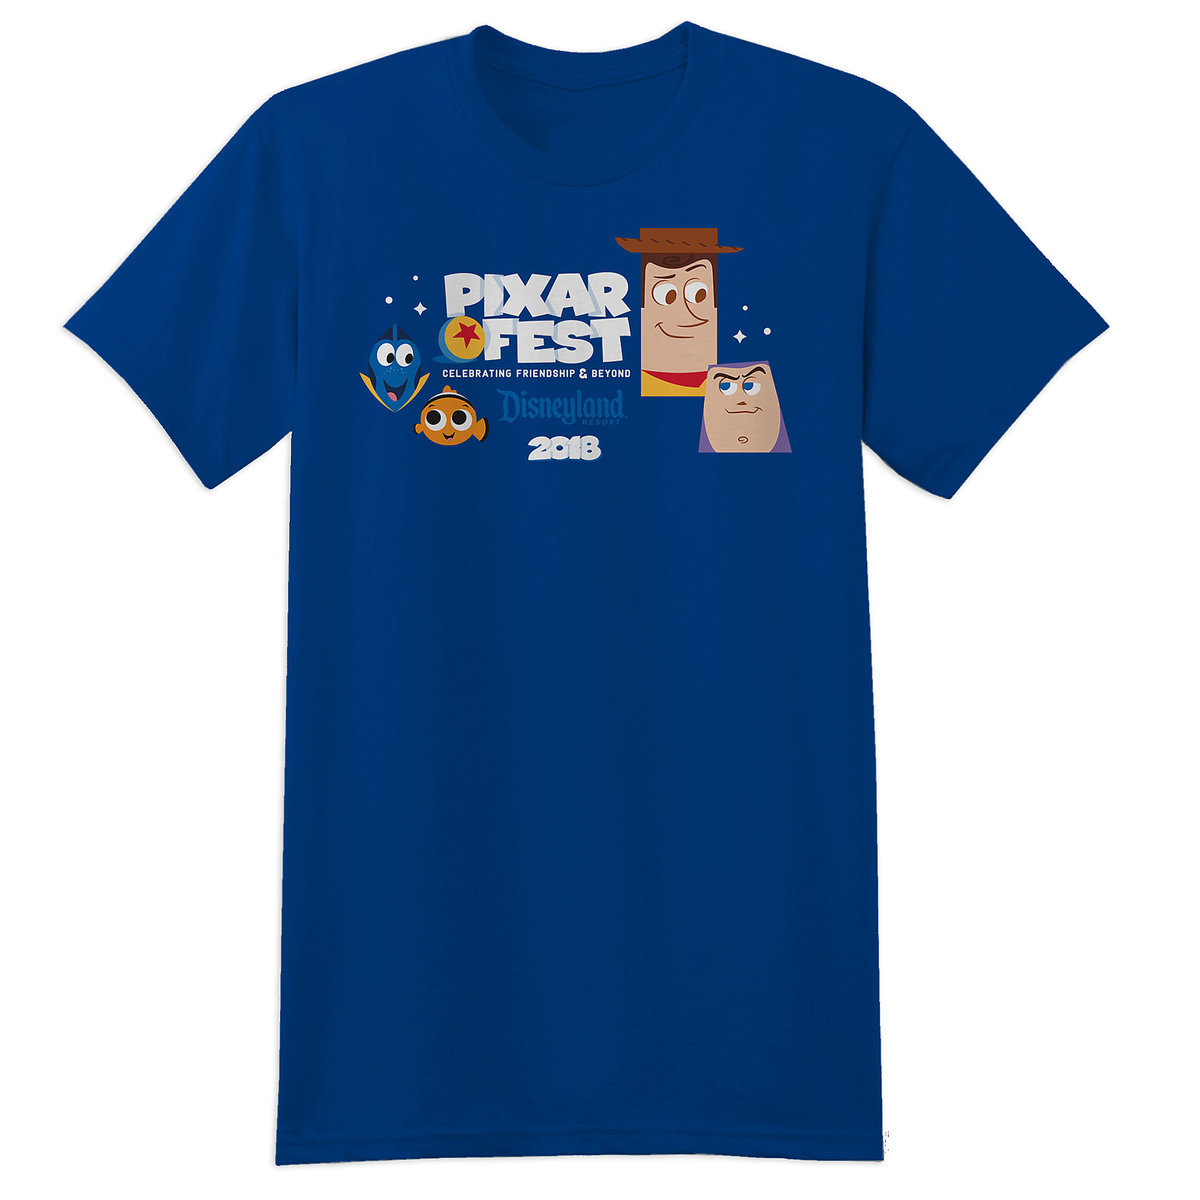 Product Image of PIXAR Fest 2018 T-Shirt for Kids - Disneyland - Limited Release # 1